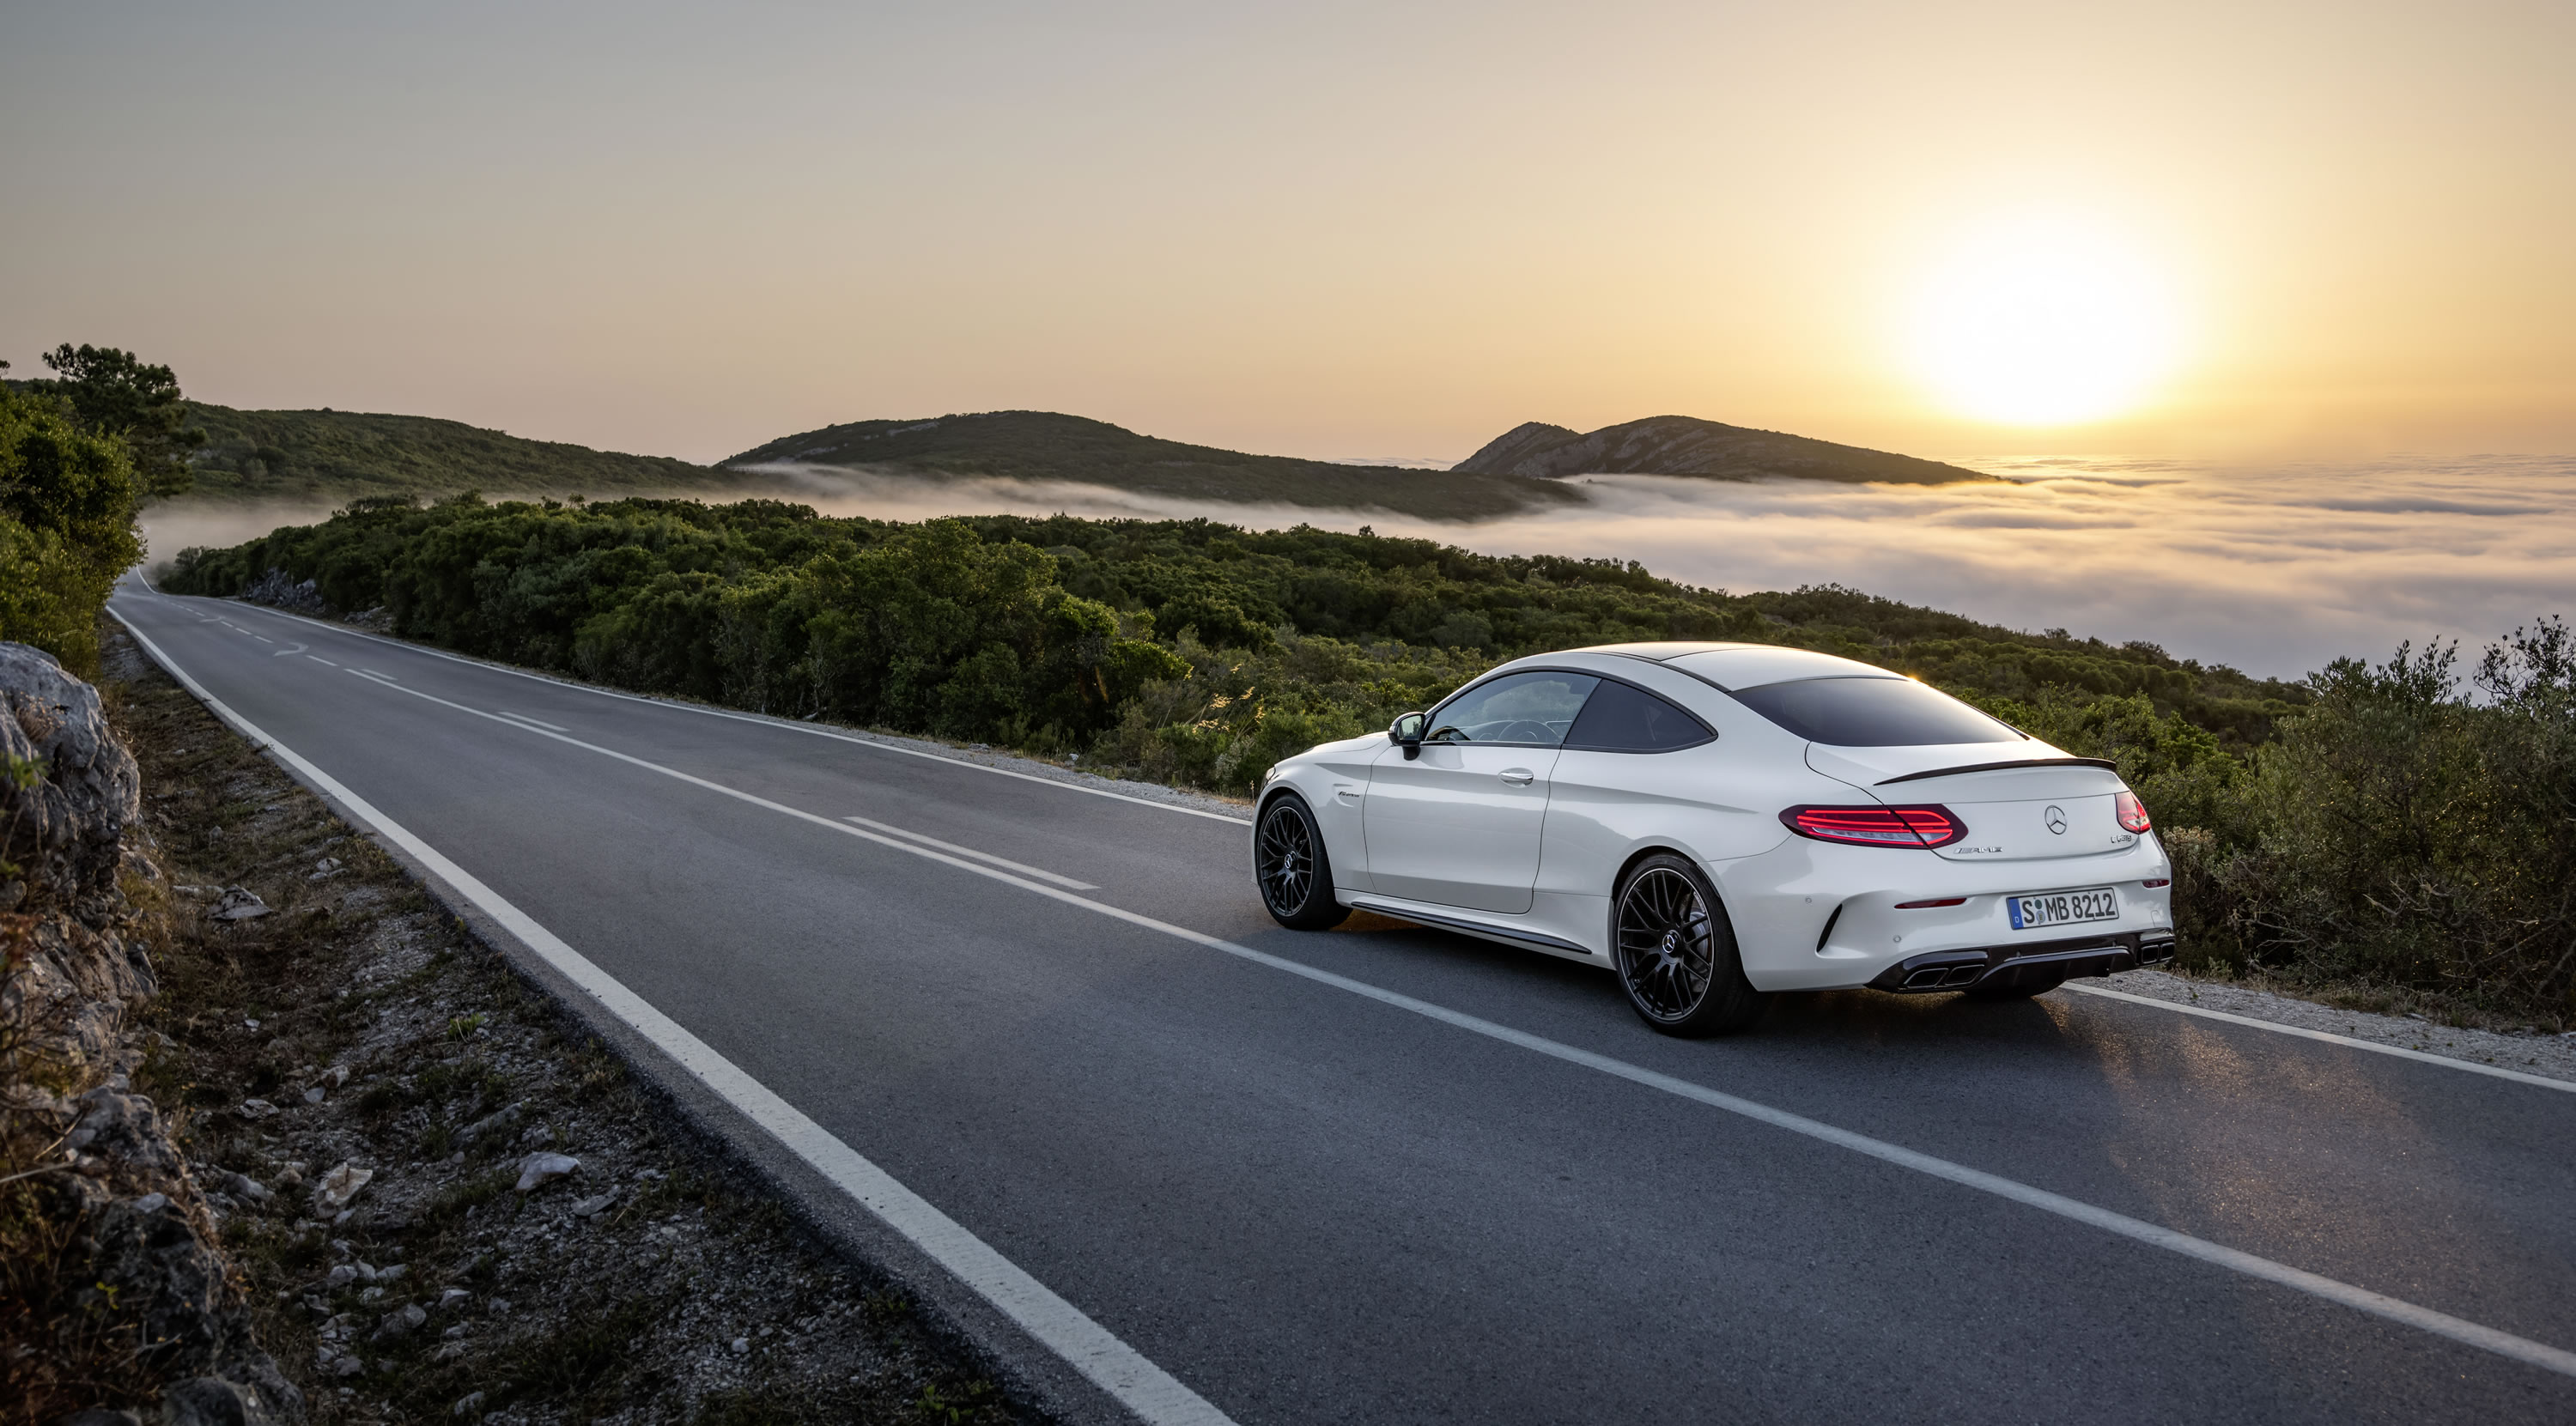 2017 Mercedes Benz AMG C63 Coupe s Specs and Review RS